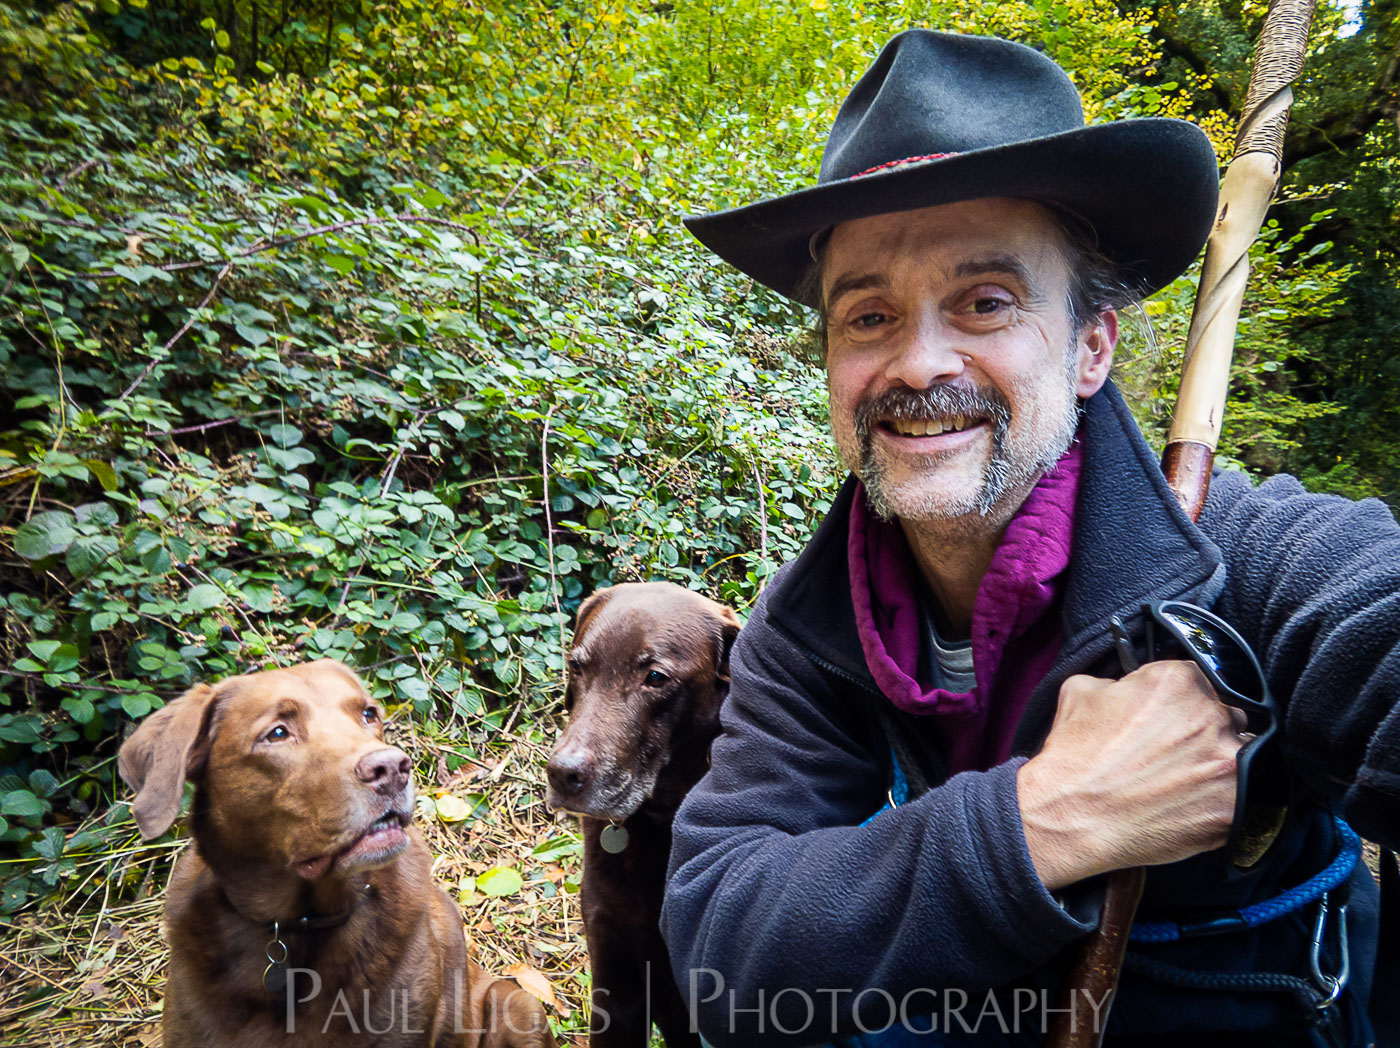 Paul Ligas Photography Ethical Commercial Photographer Herefordshire